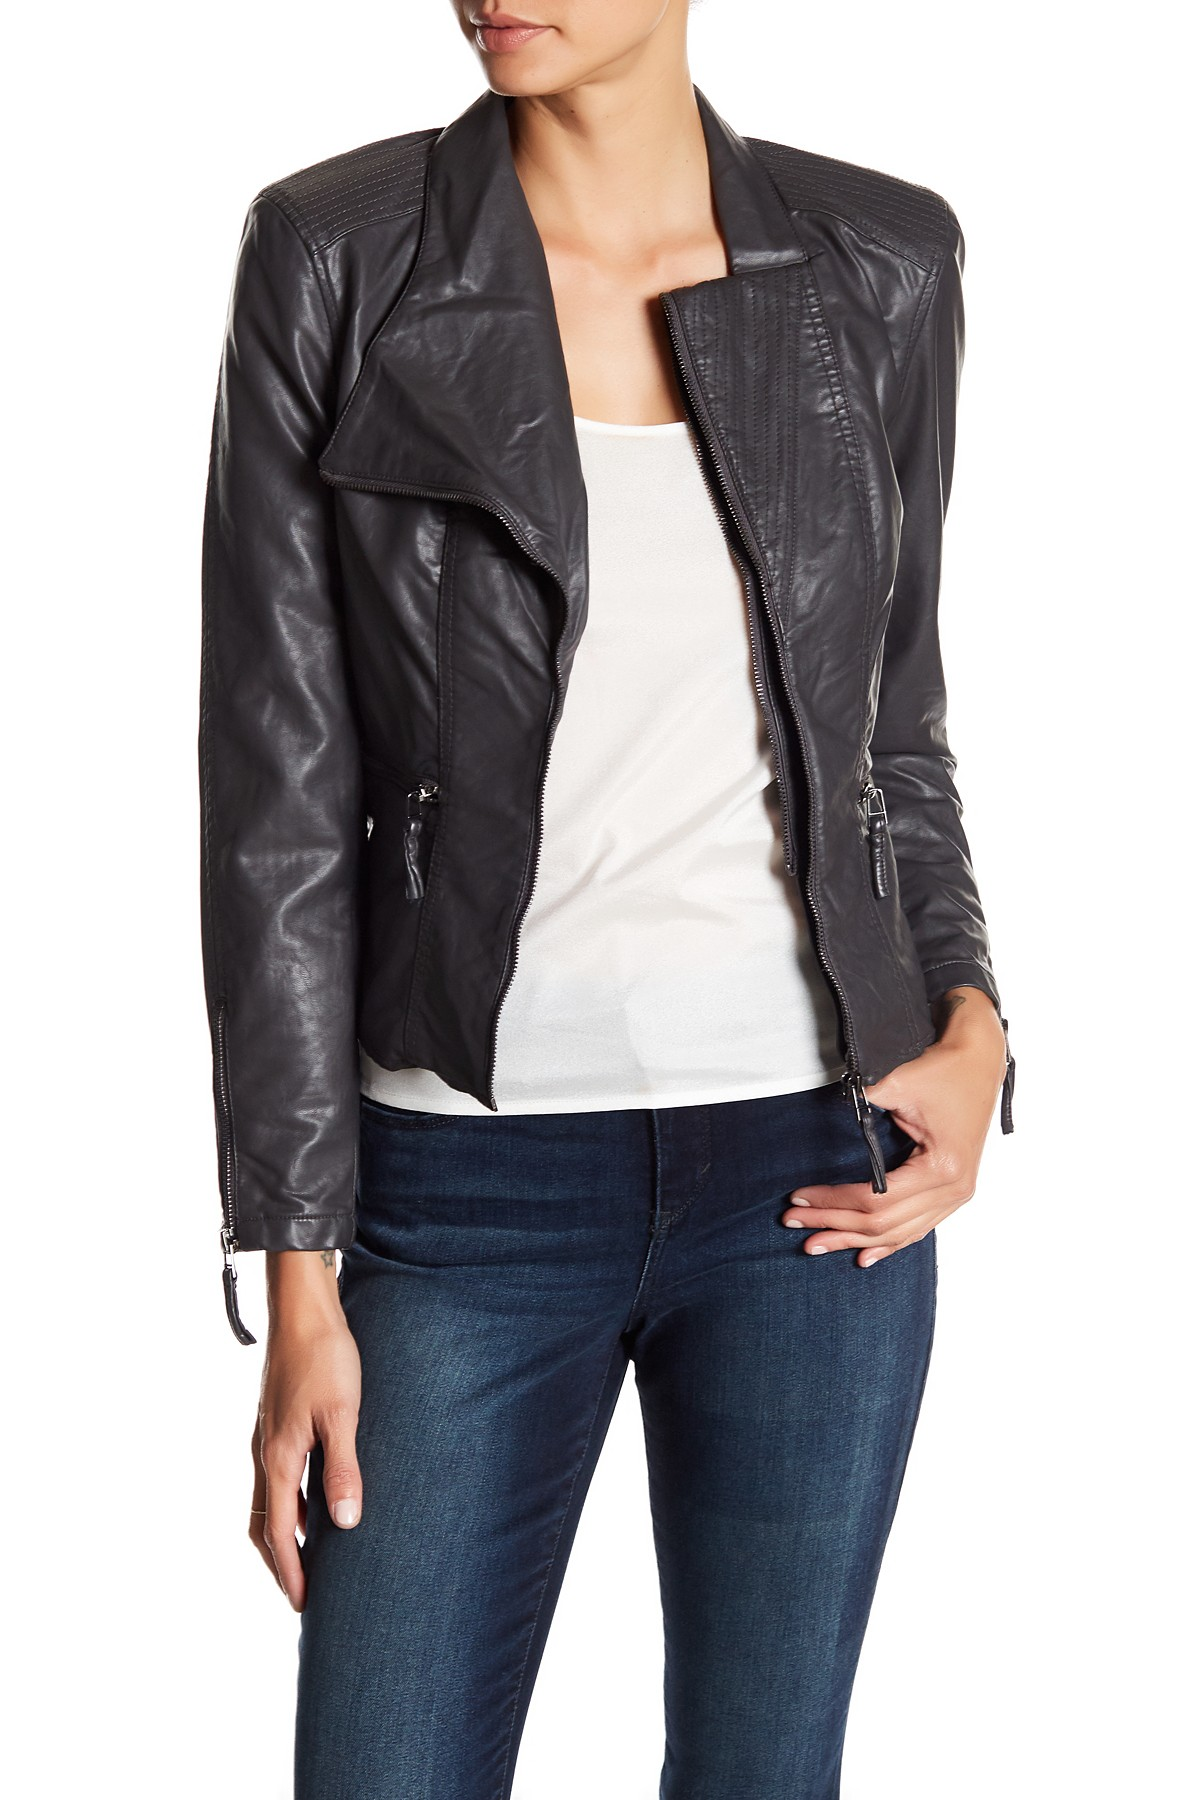 leather jackets image of blanknyc denim faux leather fitted moto jacket GSZTOCY